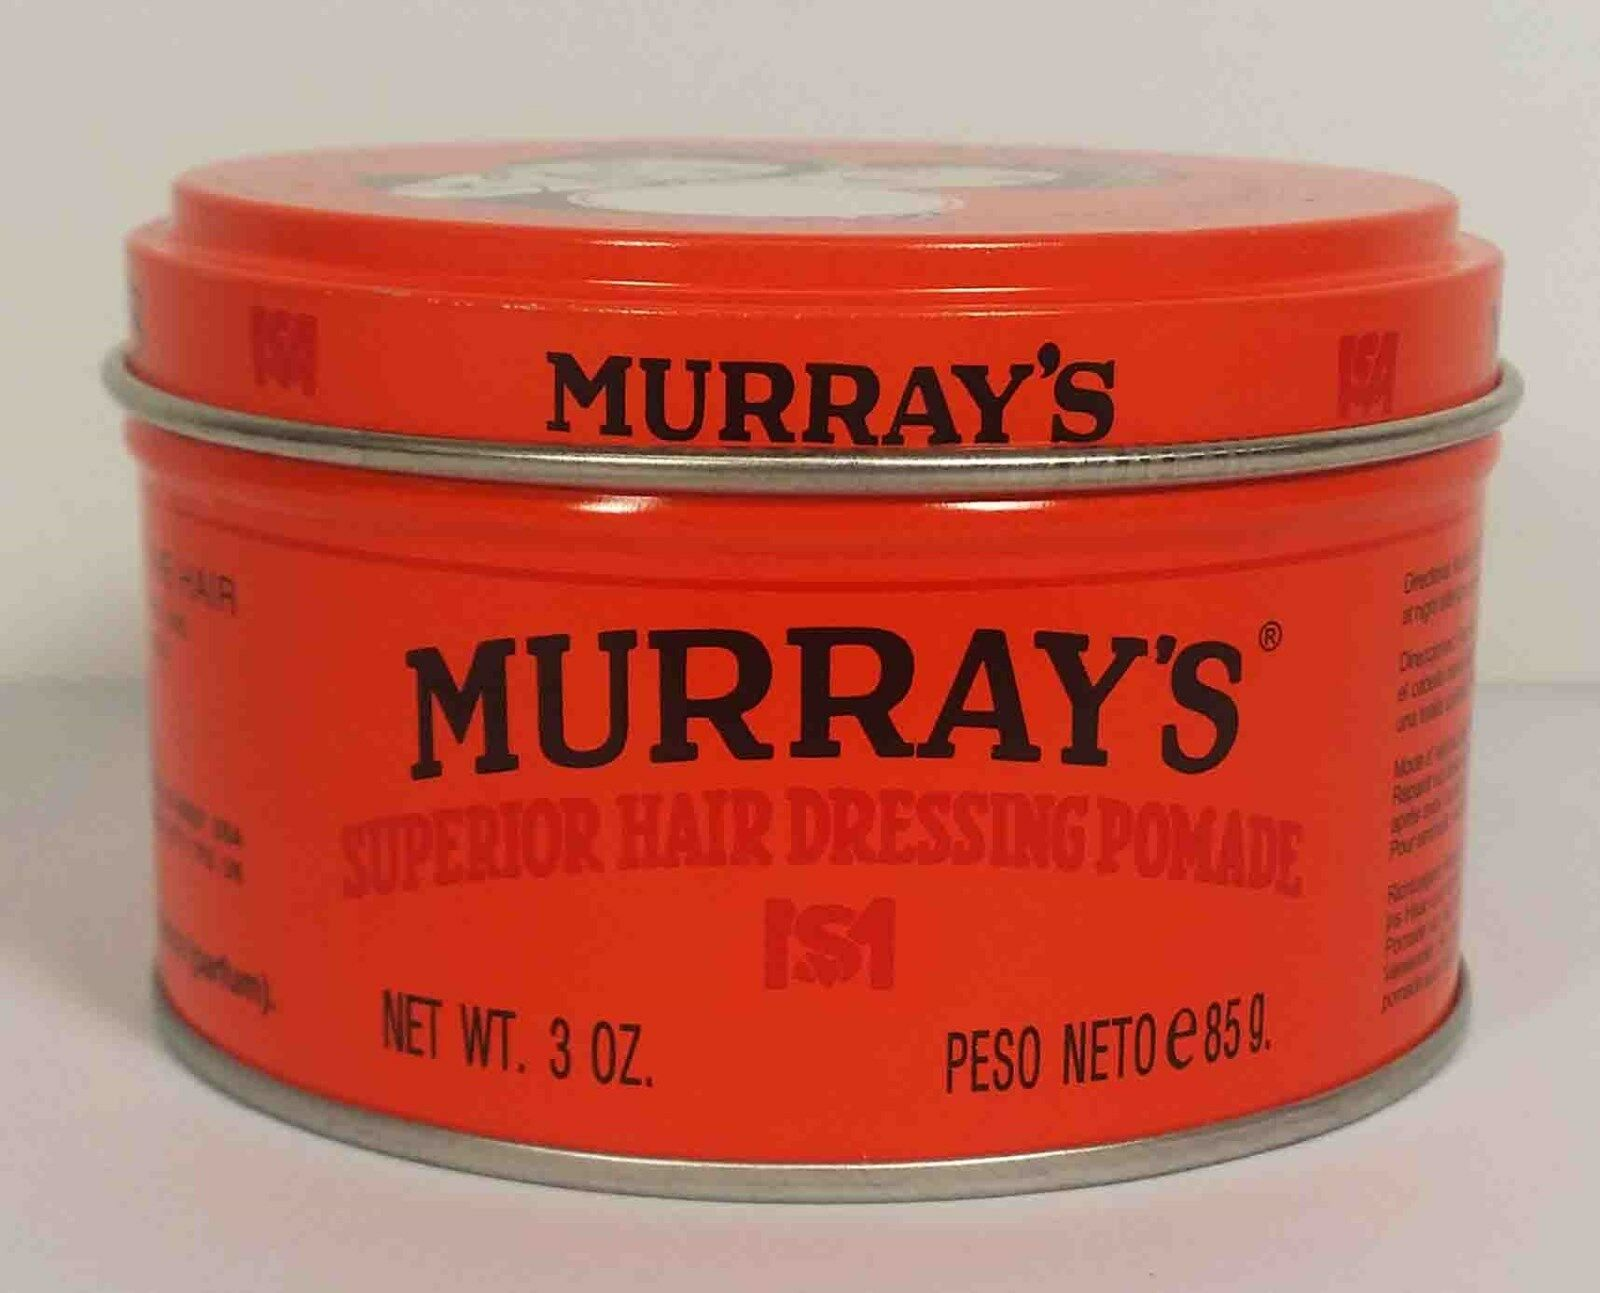 Murrays Superior Hair Dressing Pomade 3oz 599 Picclick Murray Nunile 1 Of 2free Shipping